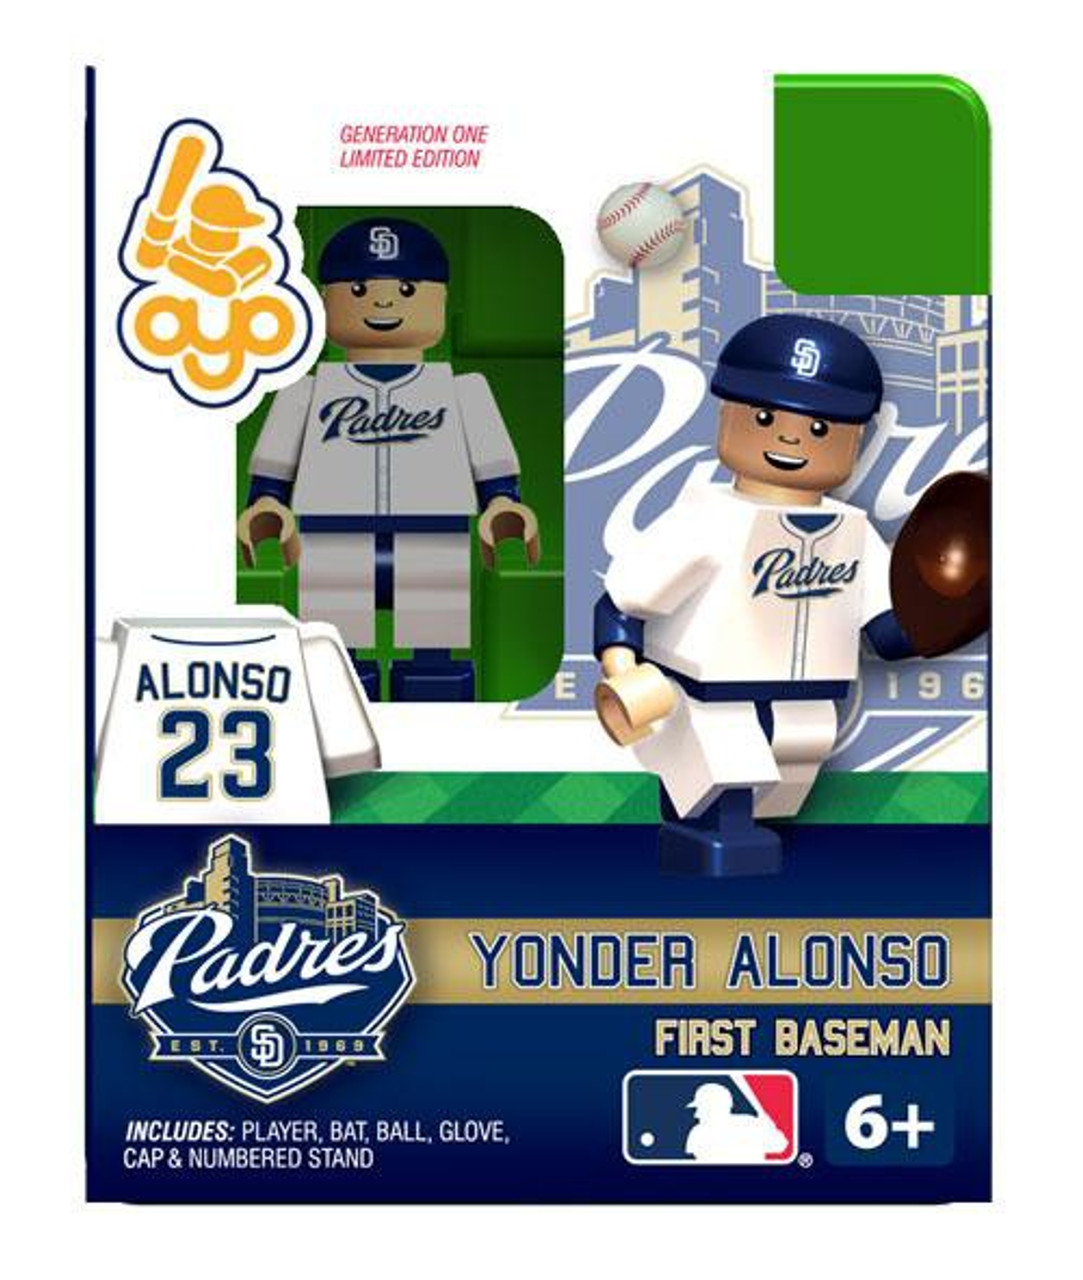 Saint Diego Padres MLB Generation One Yonder Alonso Minifigure